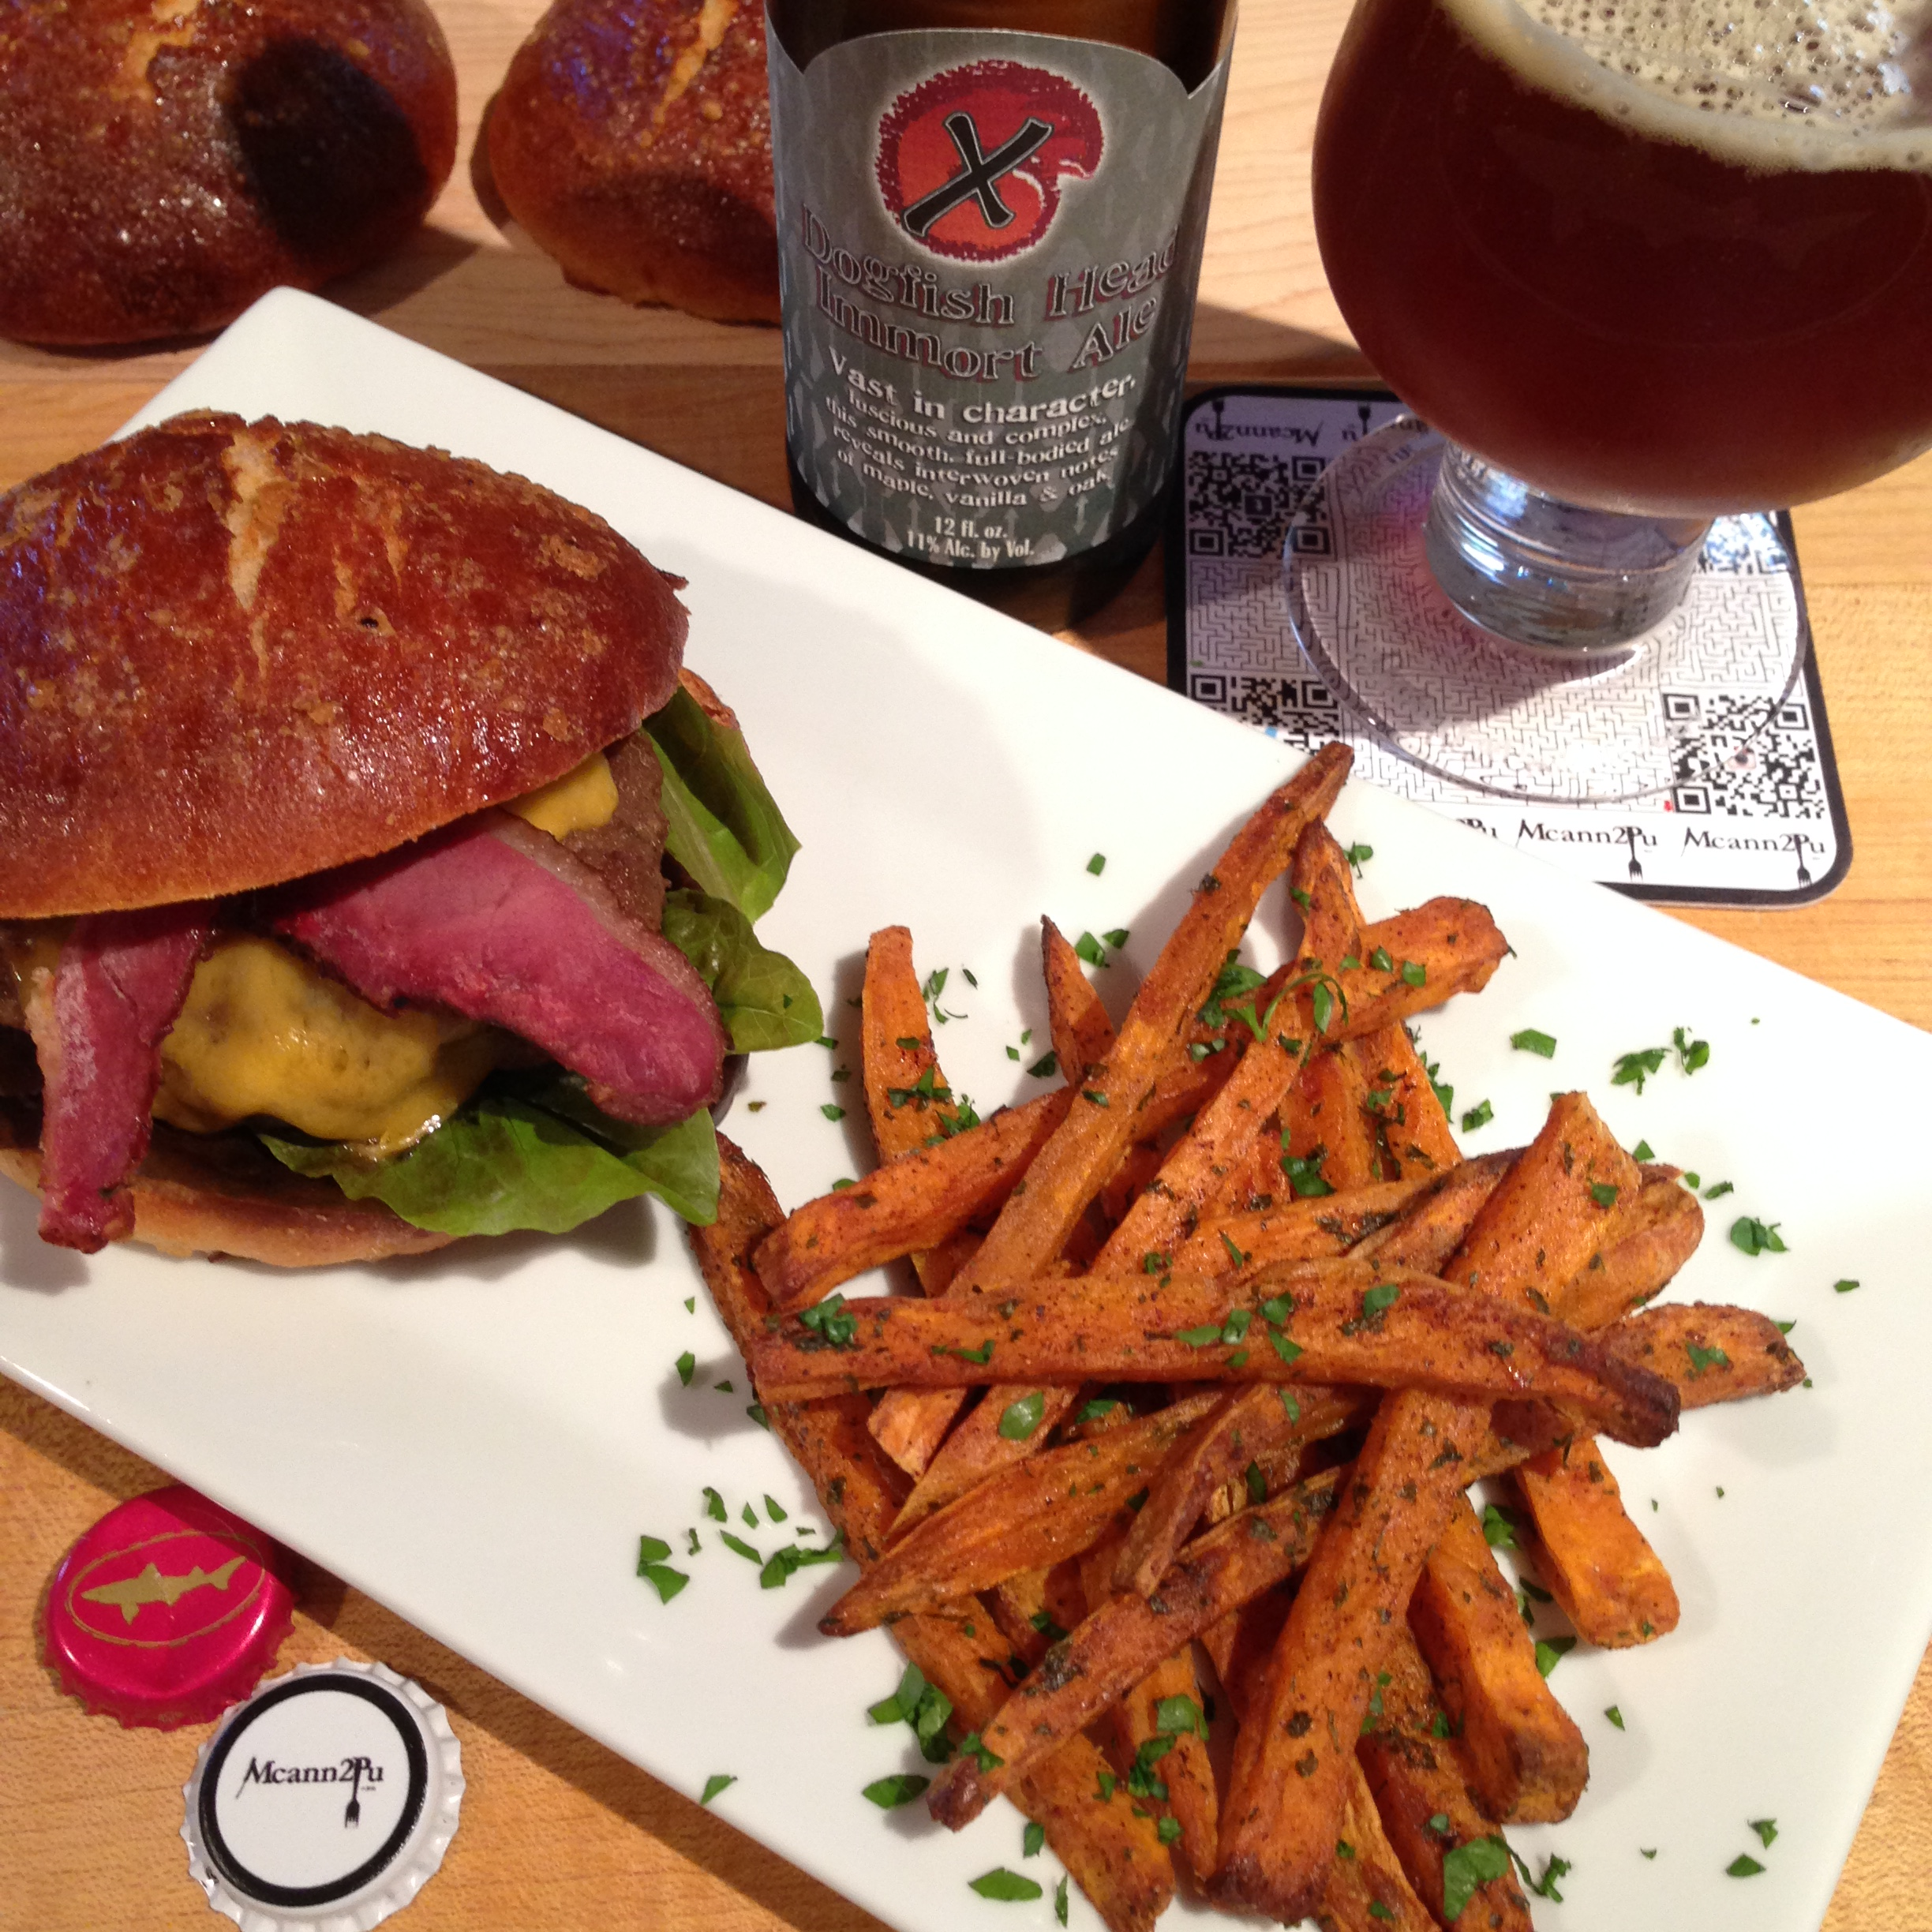 Maple Brioche Burger with Maple Cured Duck Bacon and Sweet Potato Fries